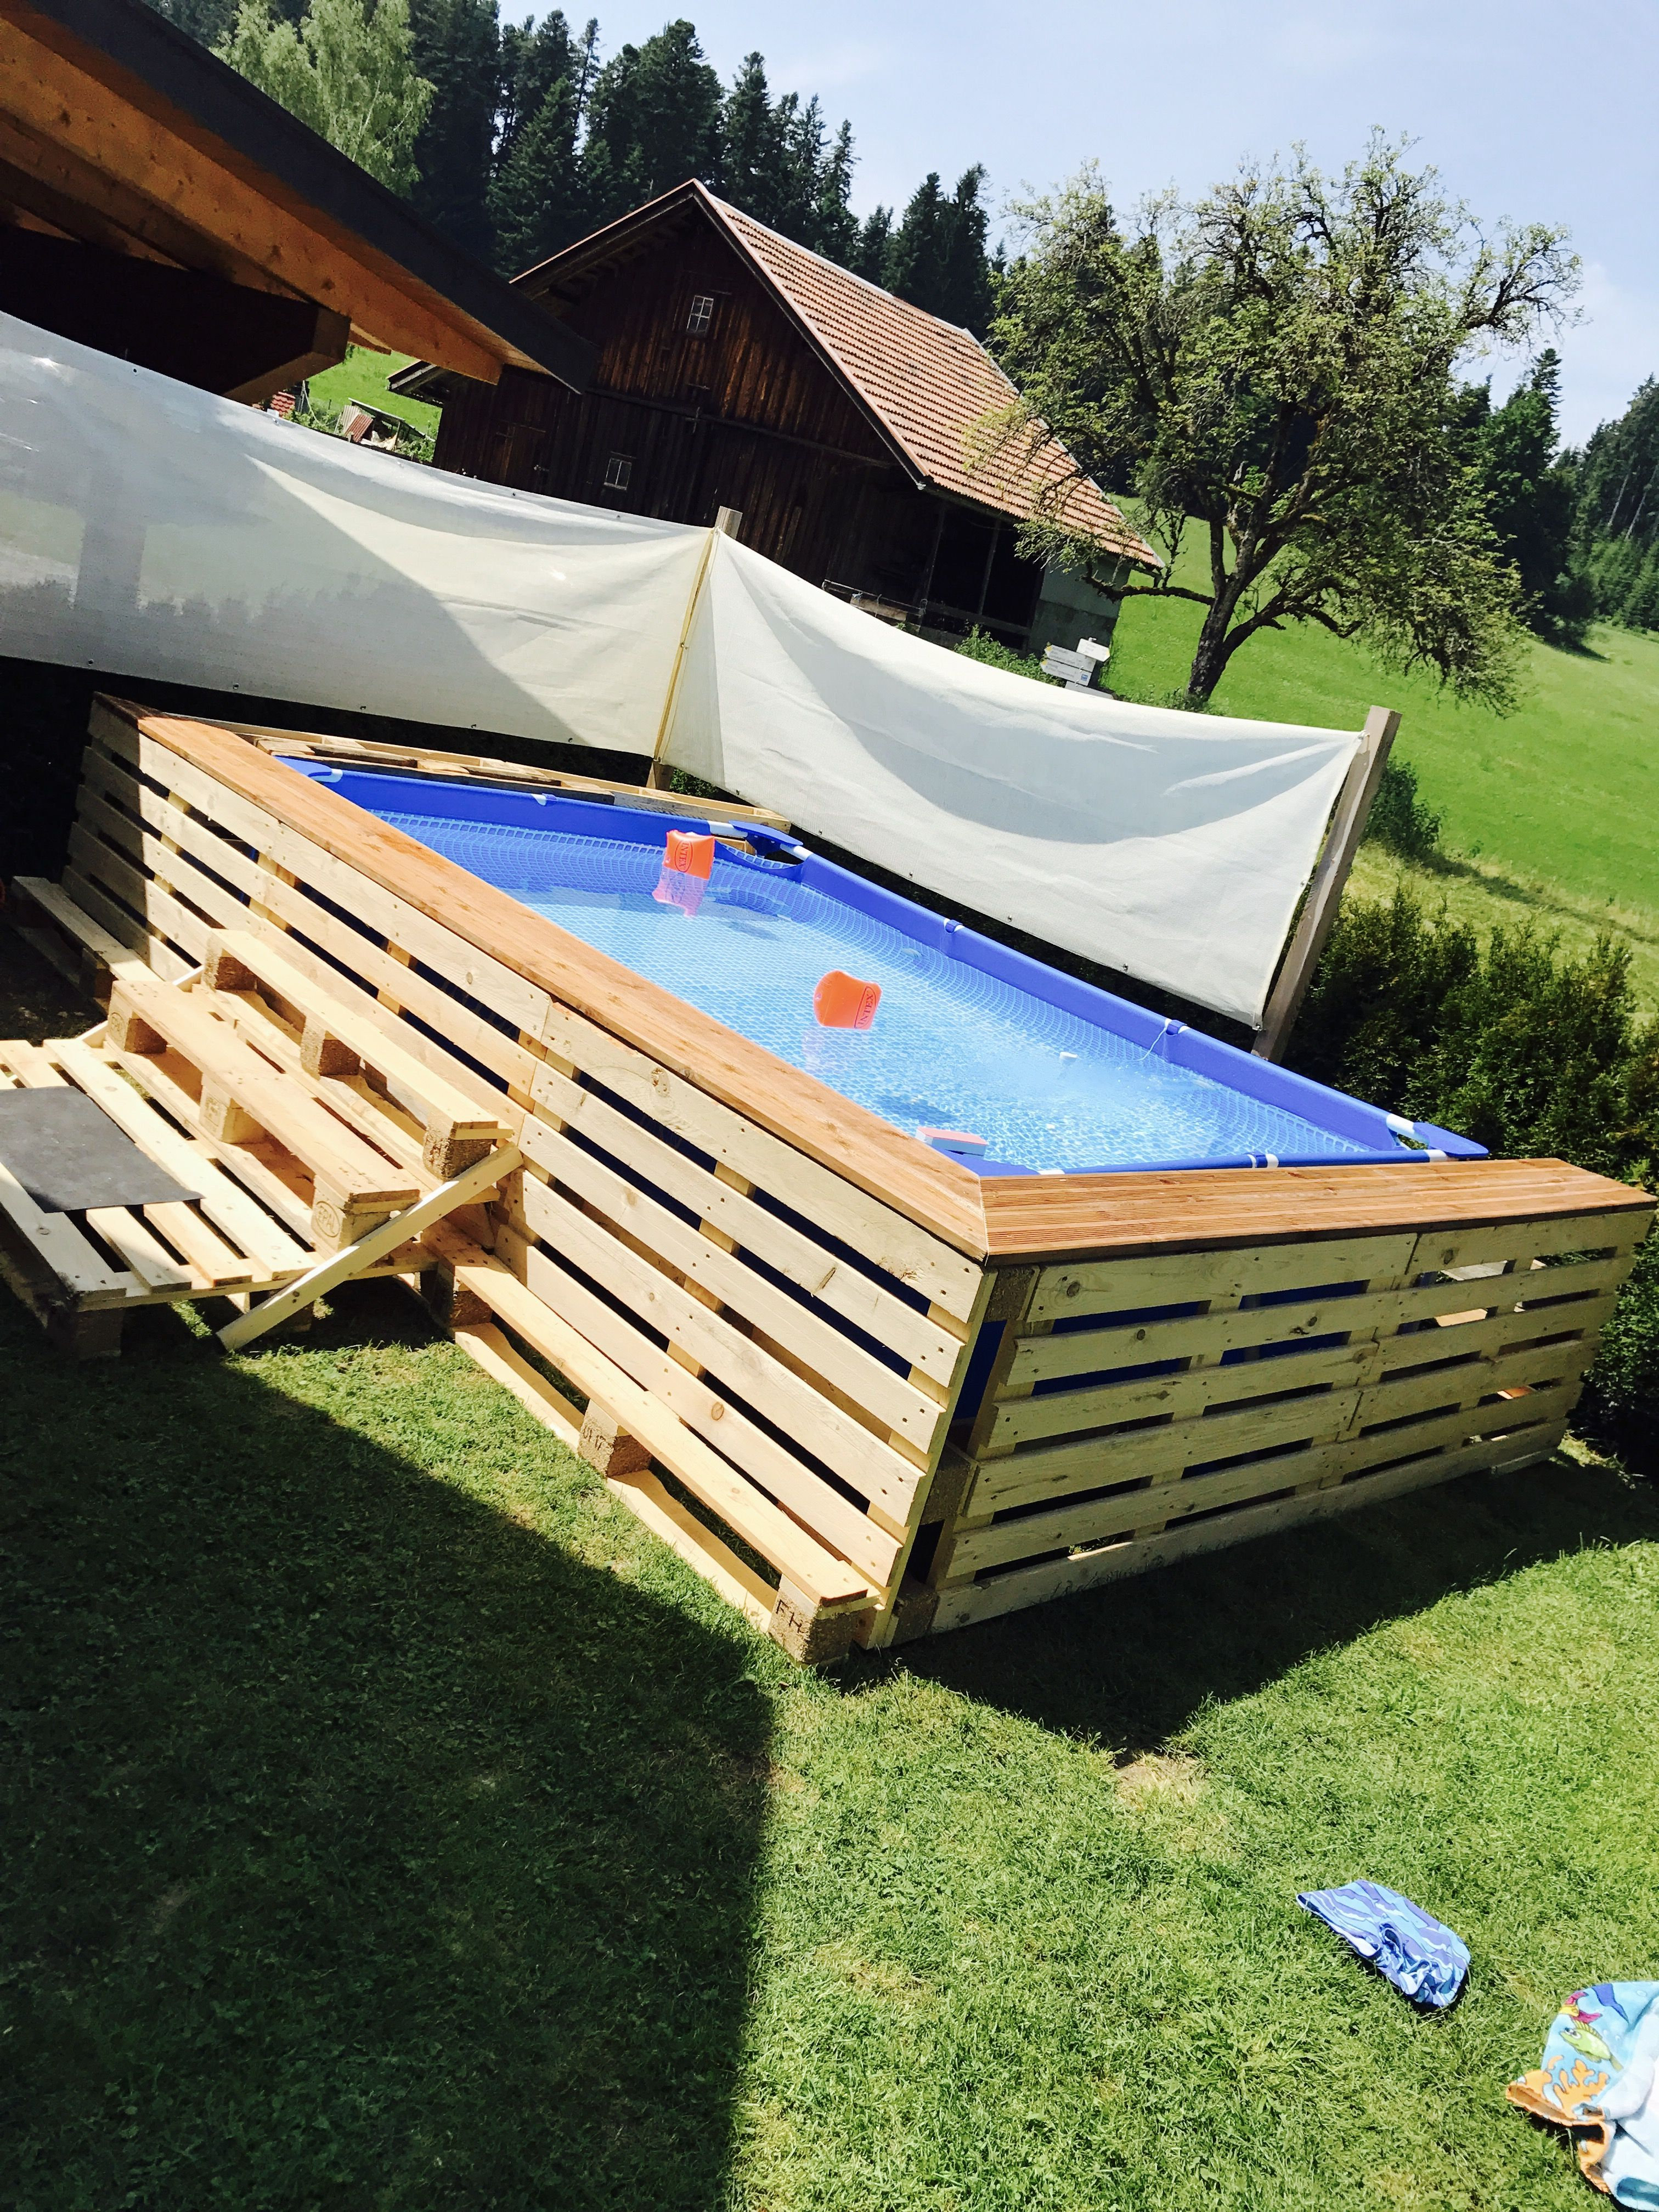 Pool Bauen Aus Europaletten Paletten Pool Powerbookone Bonanza Pinterest Ideas And Good